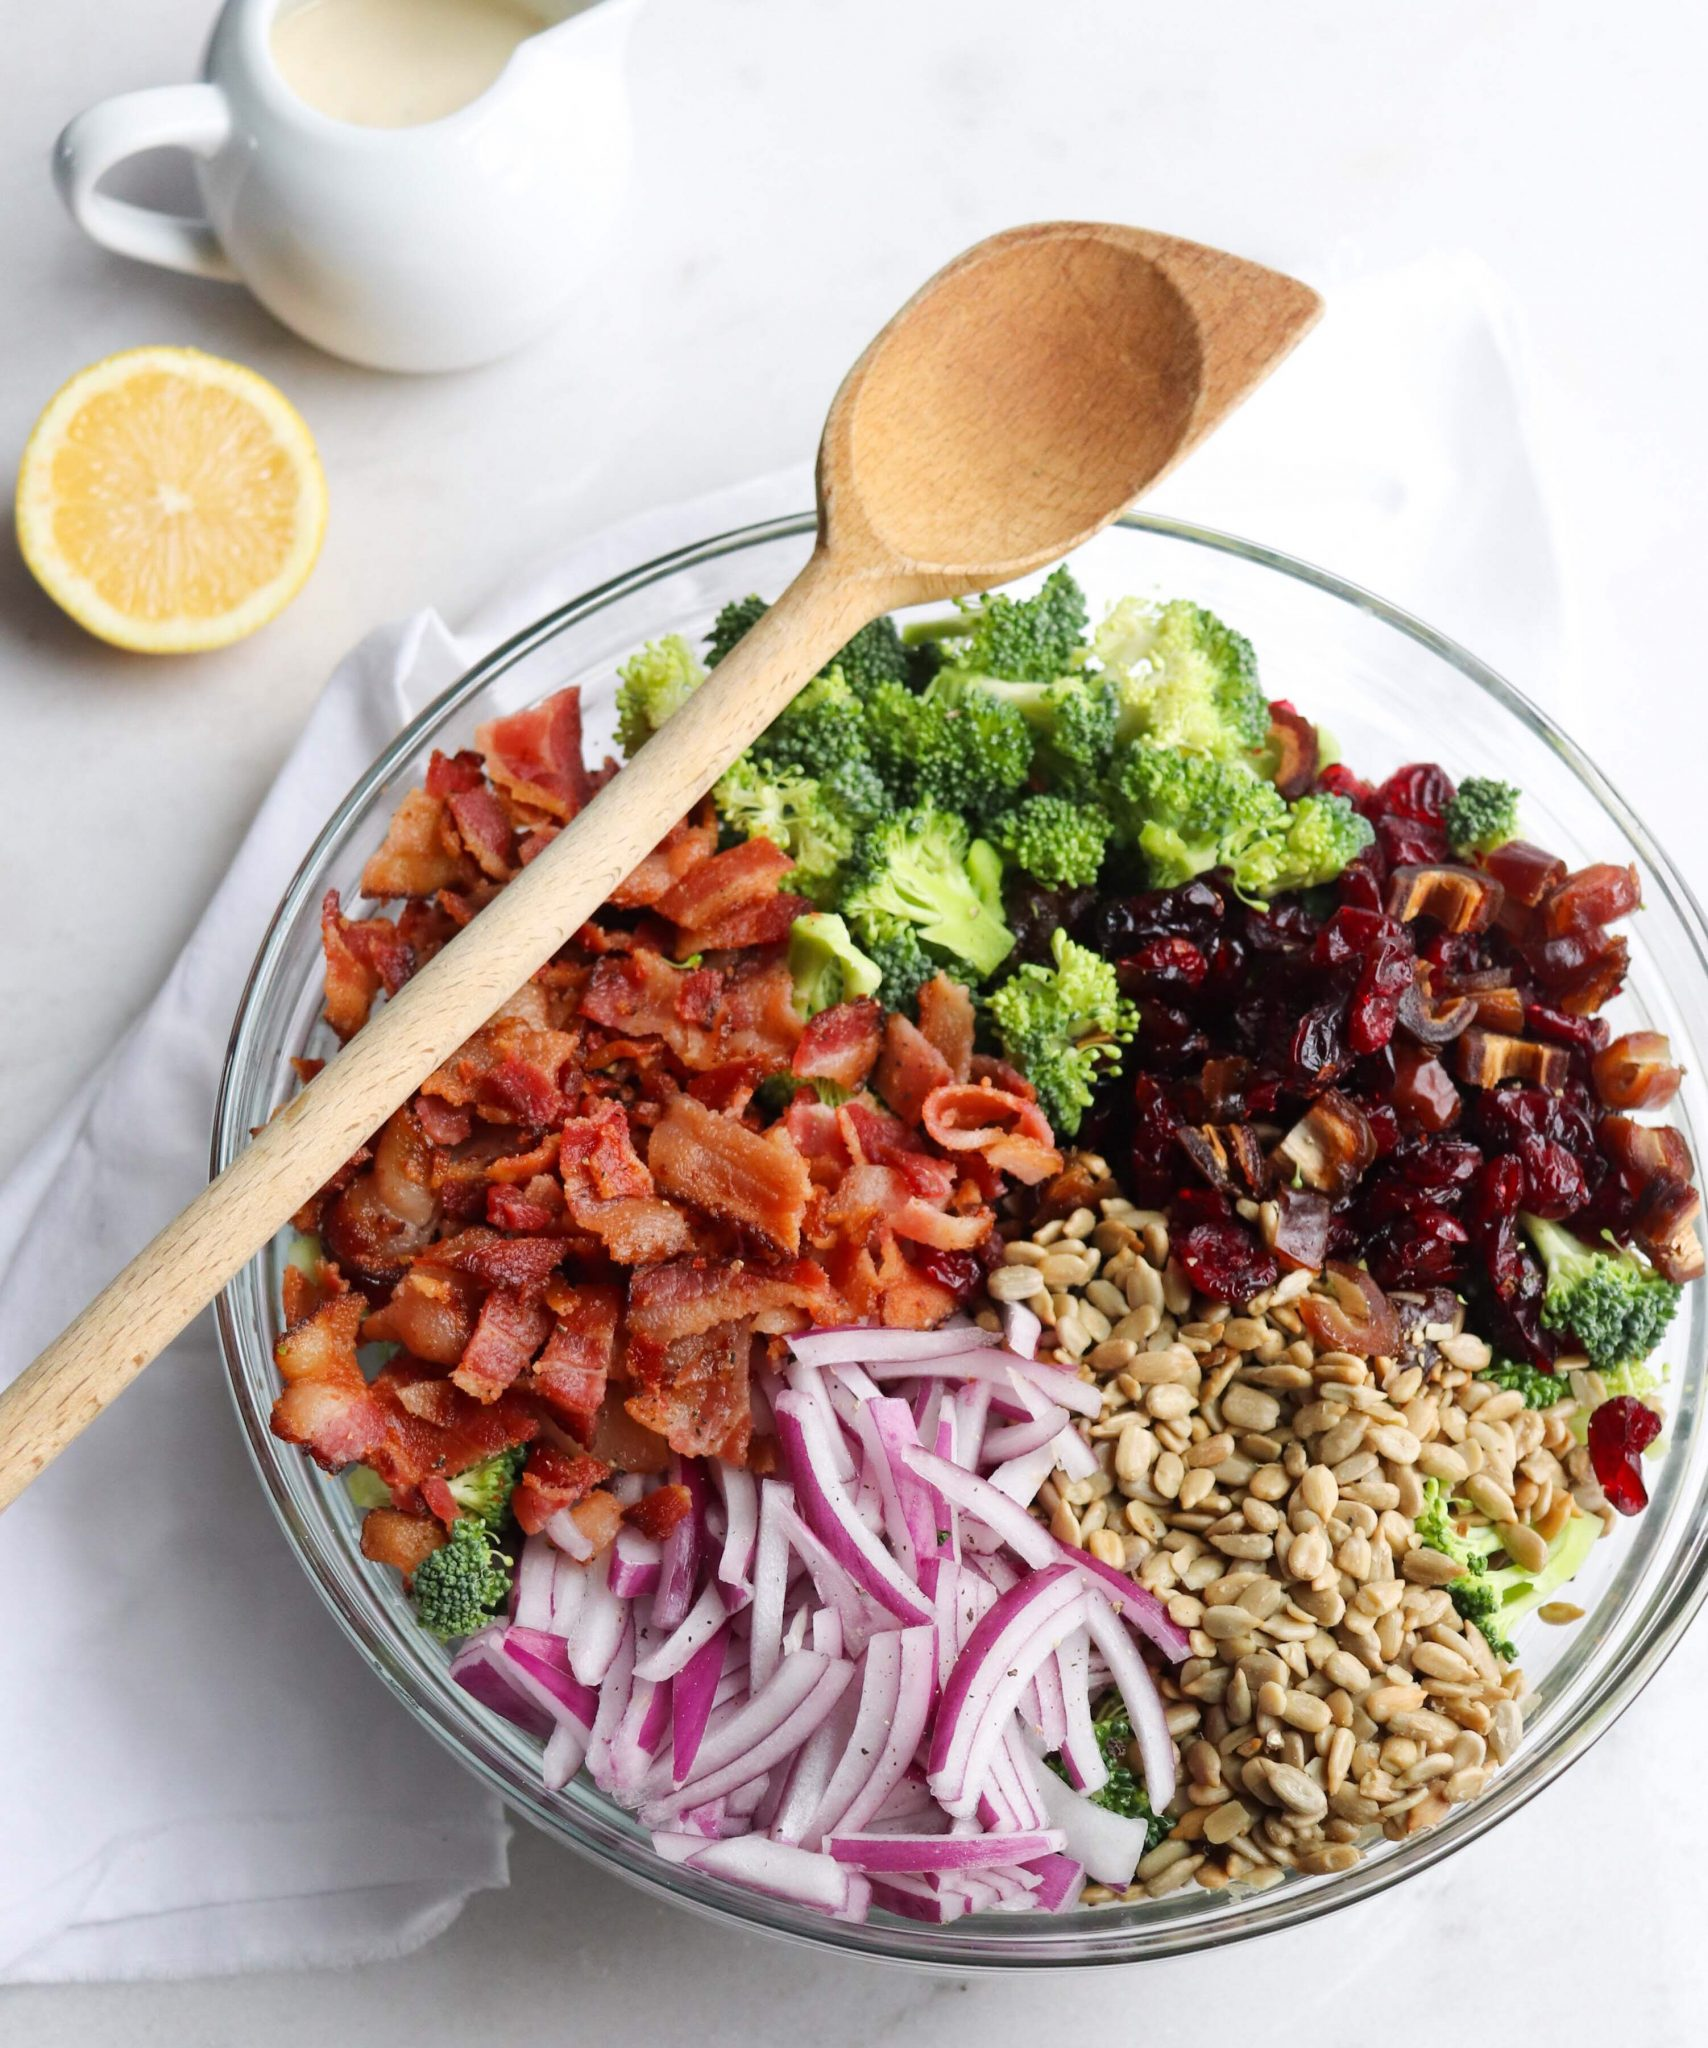 A delicious Whole30 compliant salad made with broccoli, bacon, dates, sunflower seeds and red onion topped with a creamy lemon garlic dressing. *Easy Keto and vegetarian options included